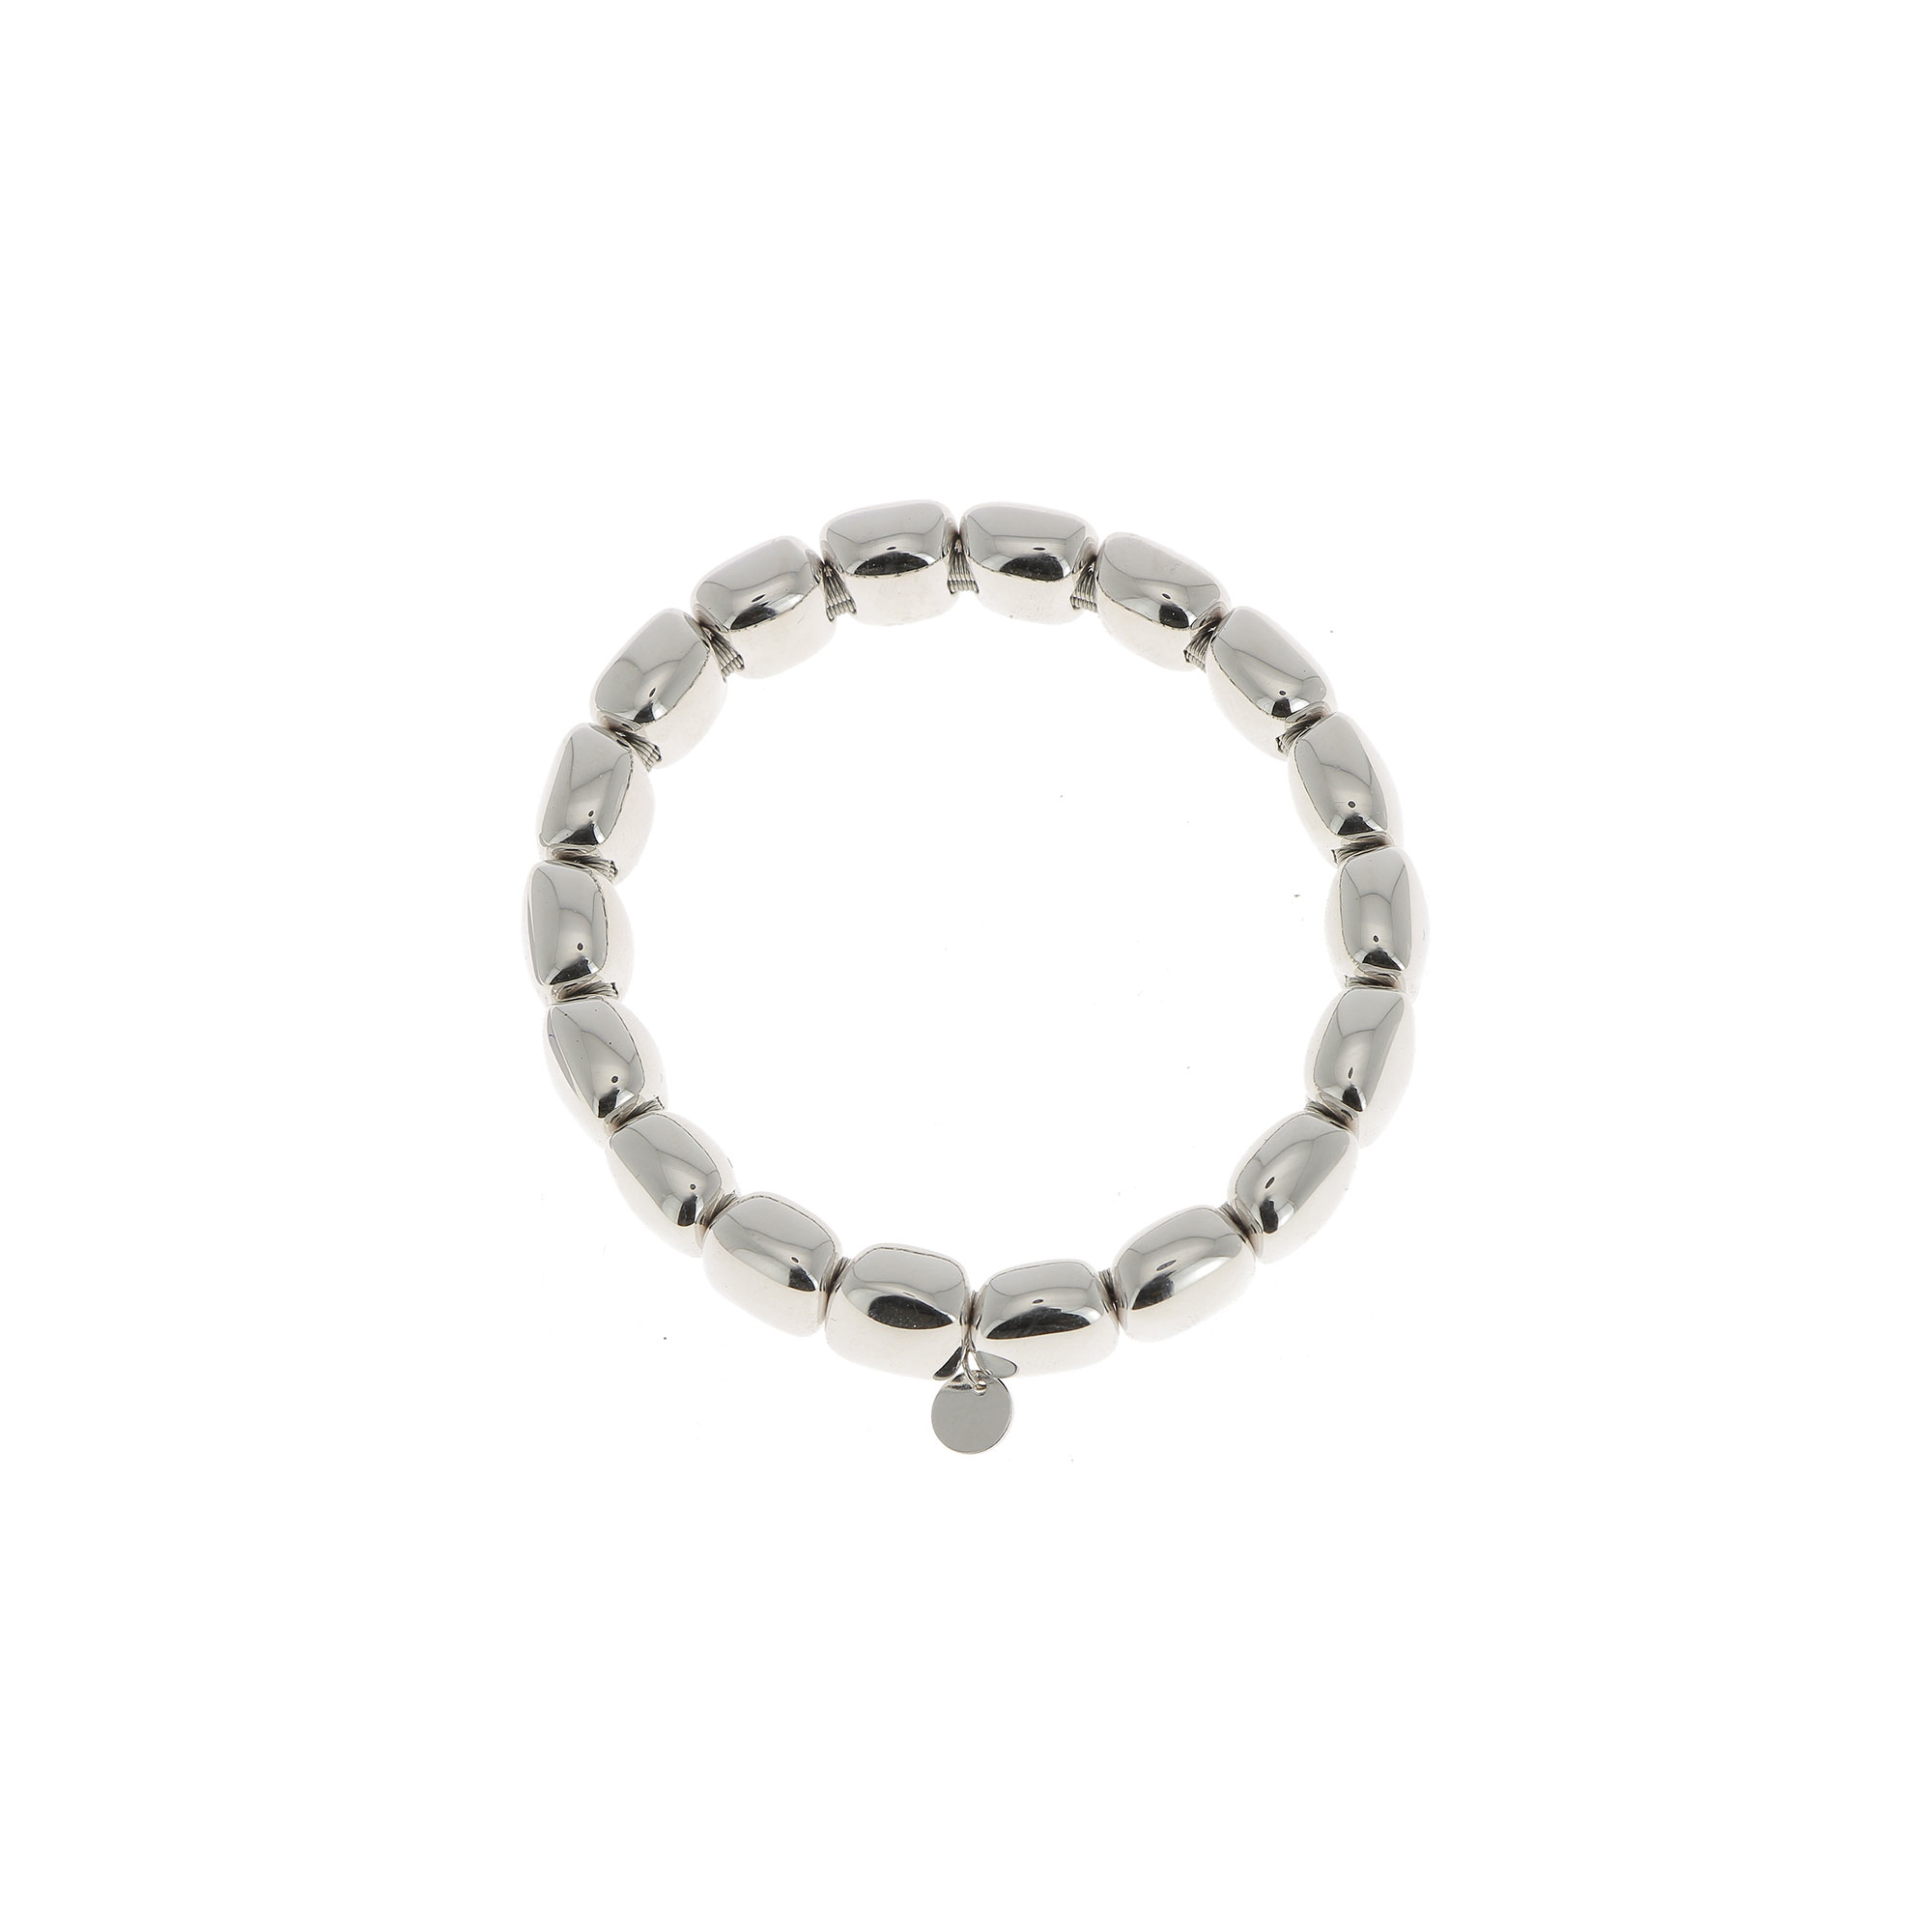 Pesavento  Rhodium Plated Sterling Silver    Silver Bracelets WLUXB023